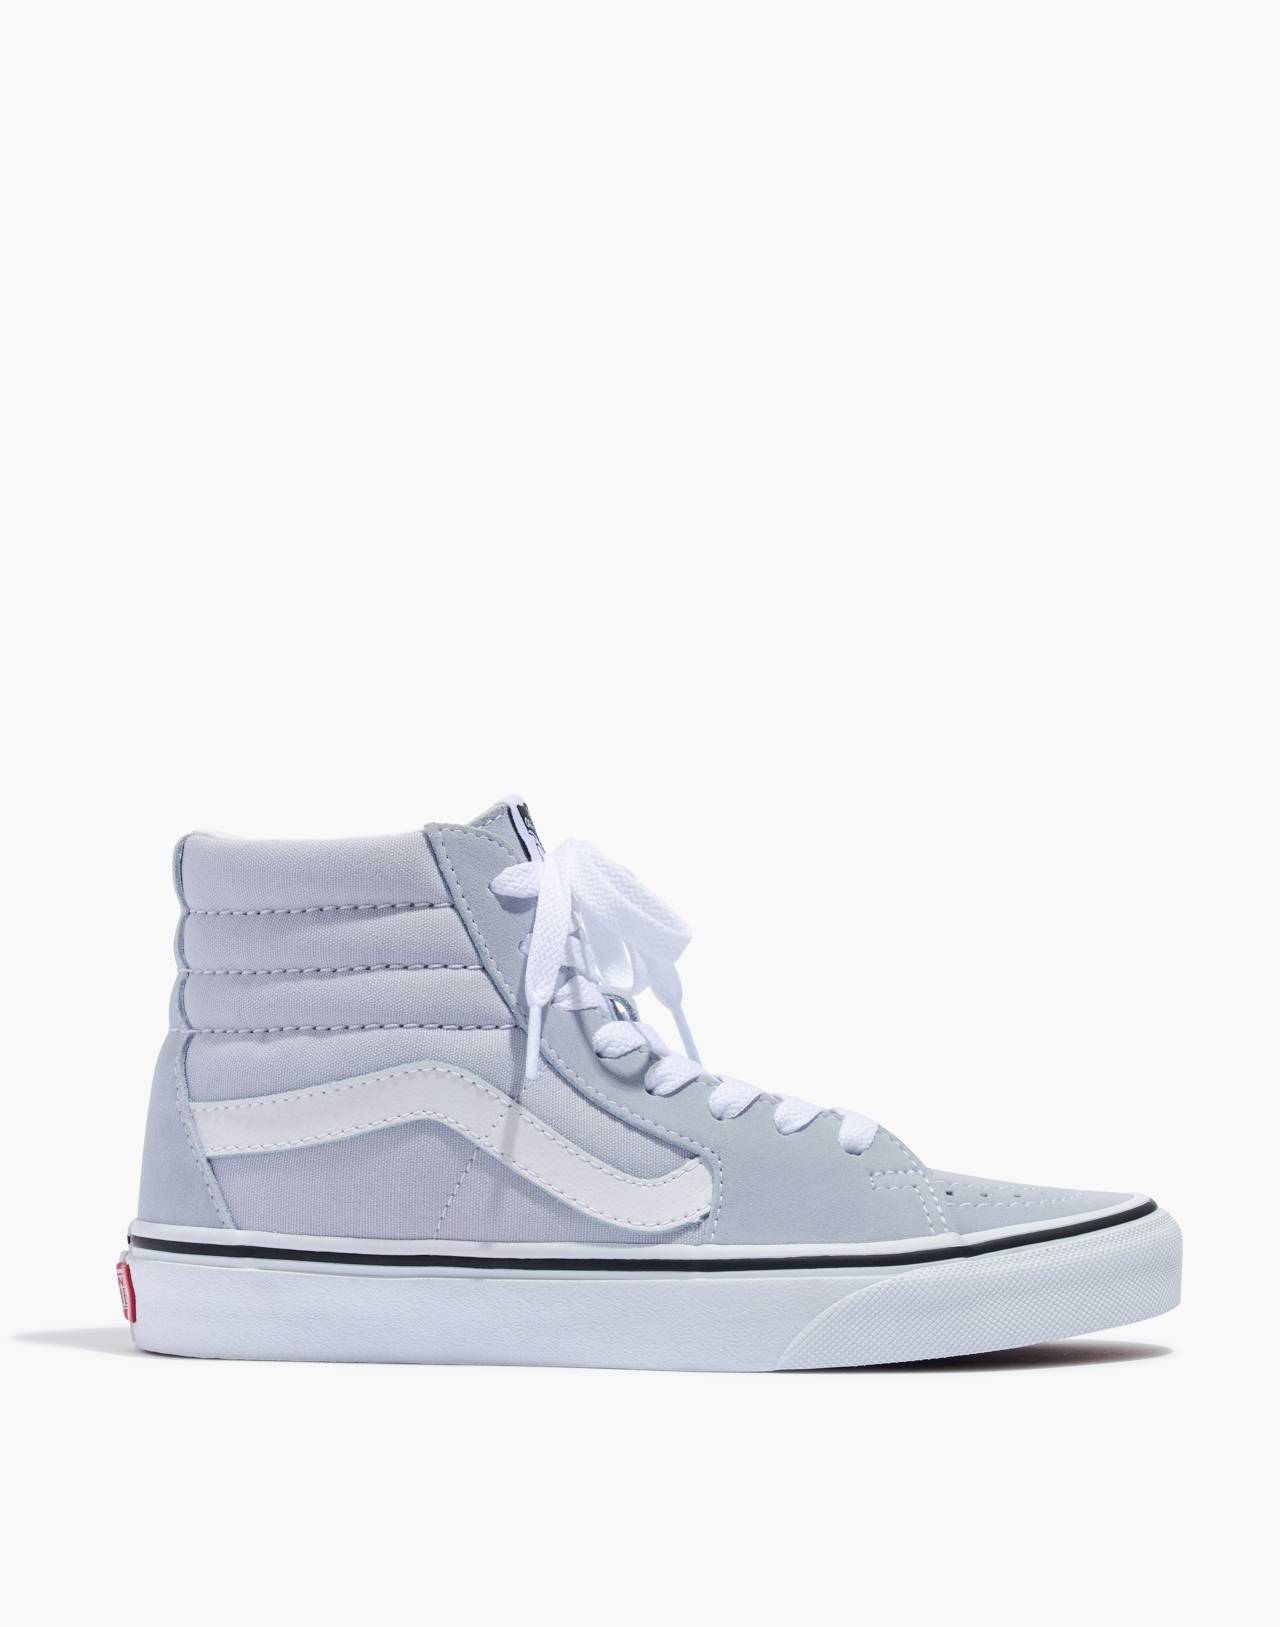 Vans® Sk8-Hi High-Top Sneakers in Canvas and Suede in gray dawn/true white image 3